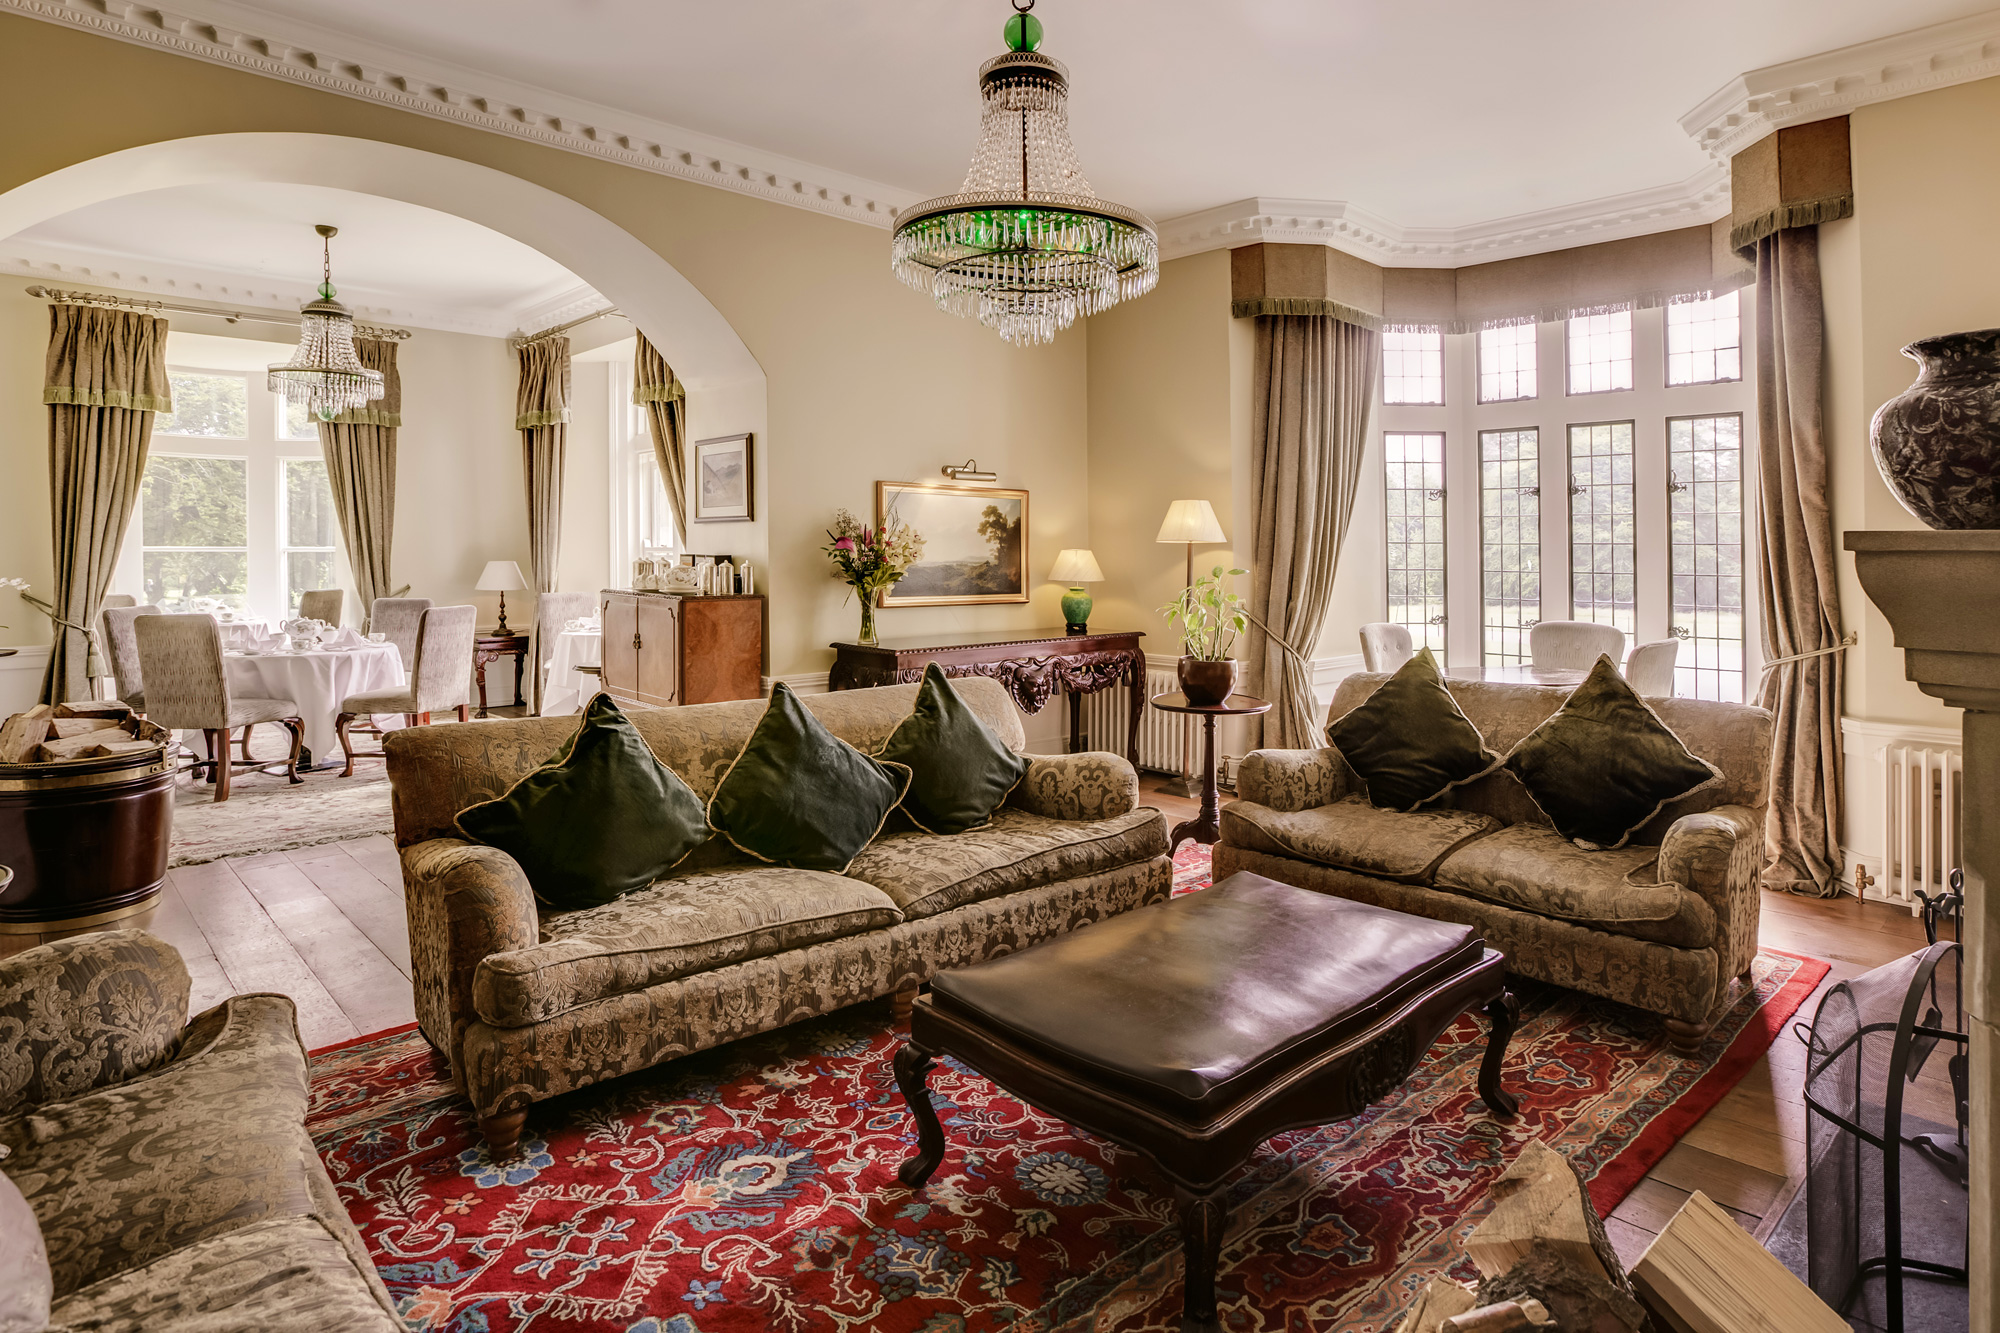 One of the best ways of absorbing all that Lough Eske Castle has to offer is by sinking into a deep armchair